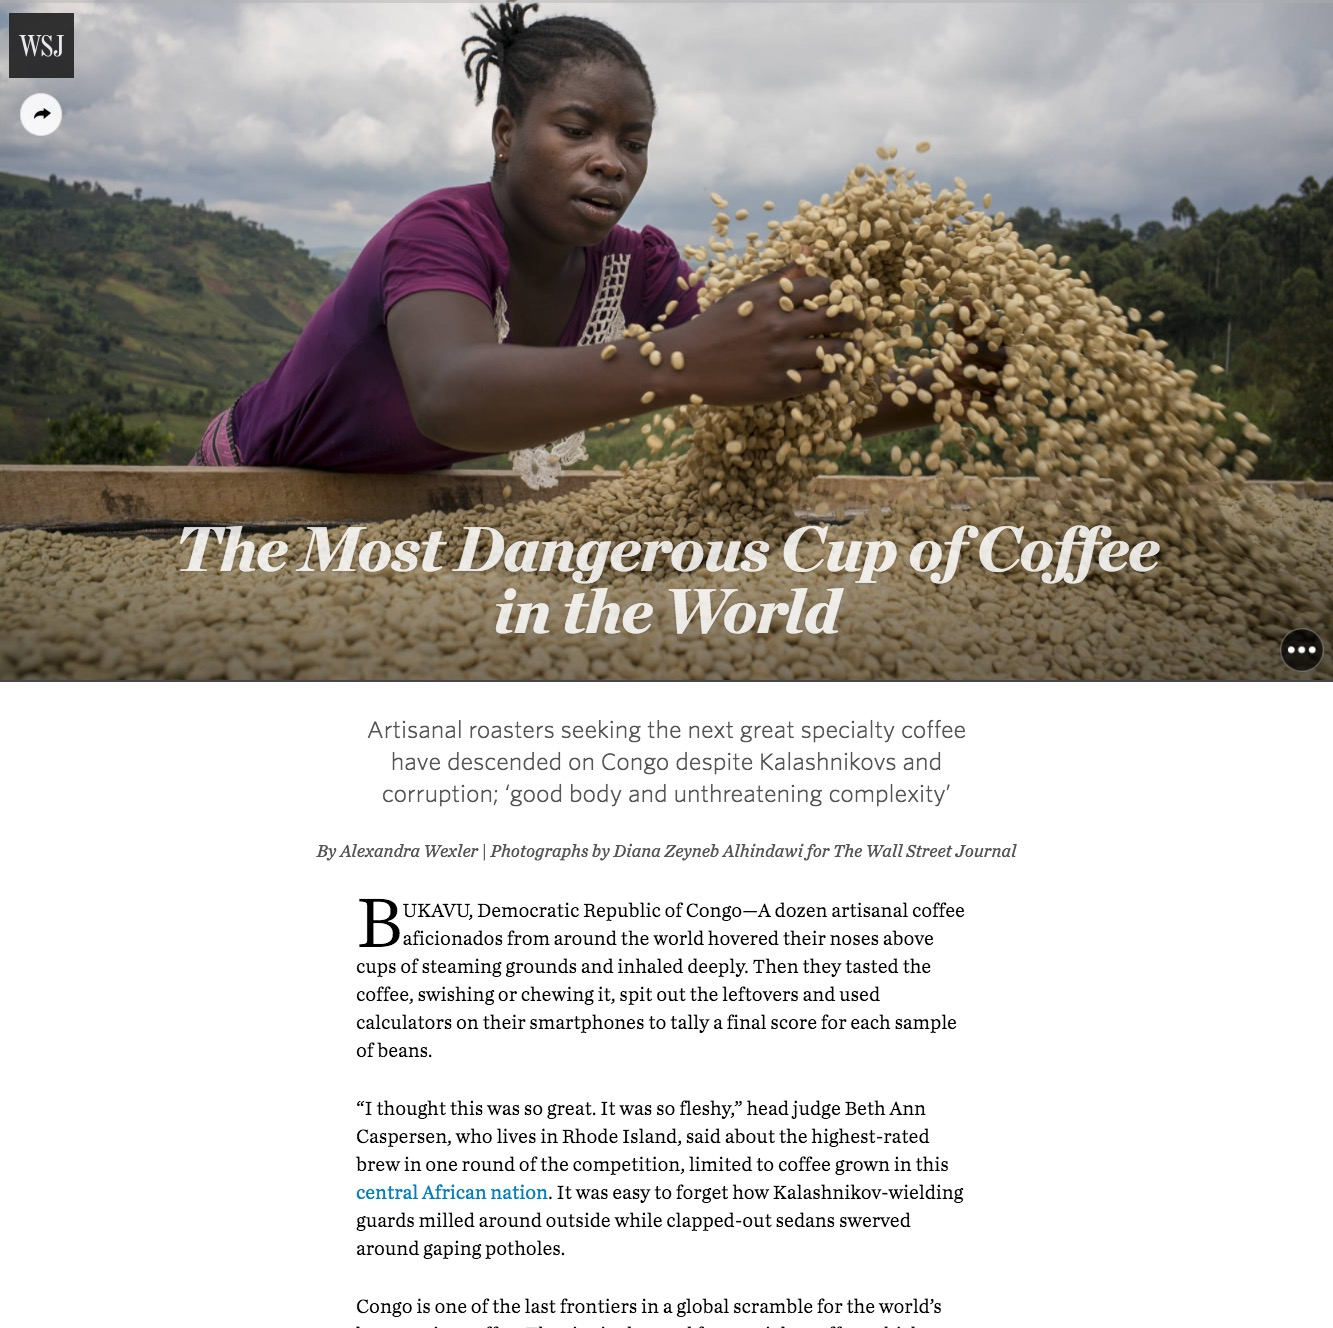 CLICK on title to link to full article     The most dangerous cup of coffee in the world  | The Wall Street Journal, Oct 14, 2016